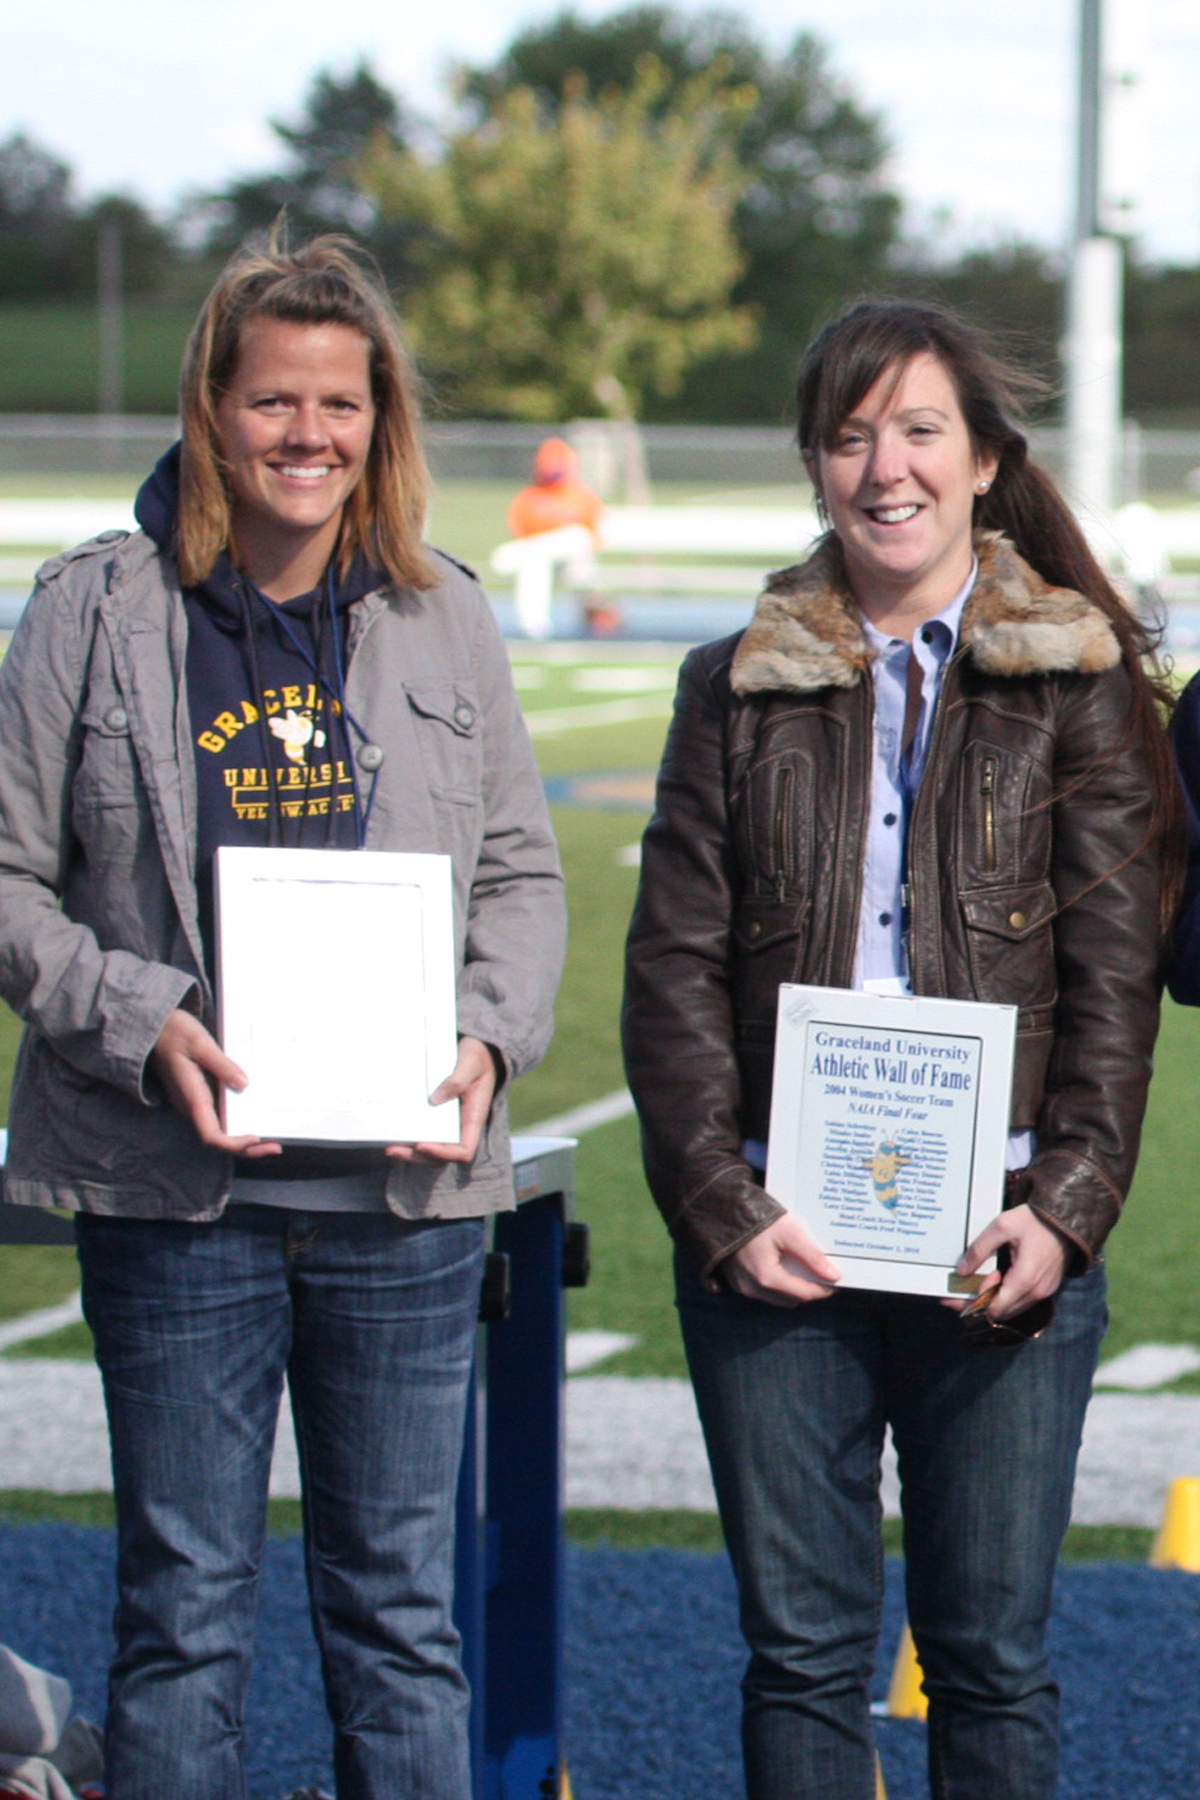 Chelsea Stewart along with Kevin Sherry were honored on Saturday.